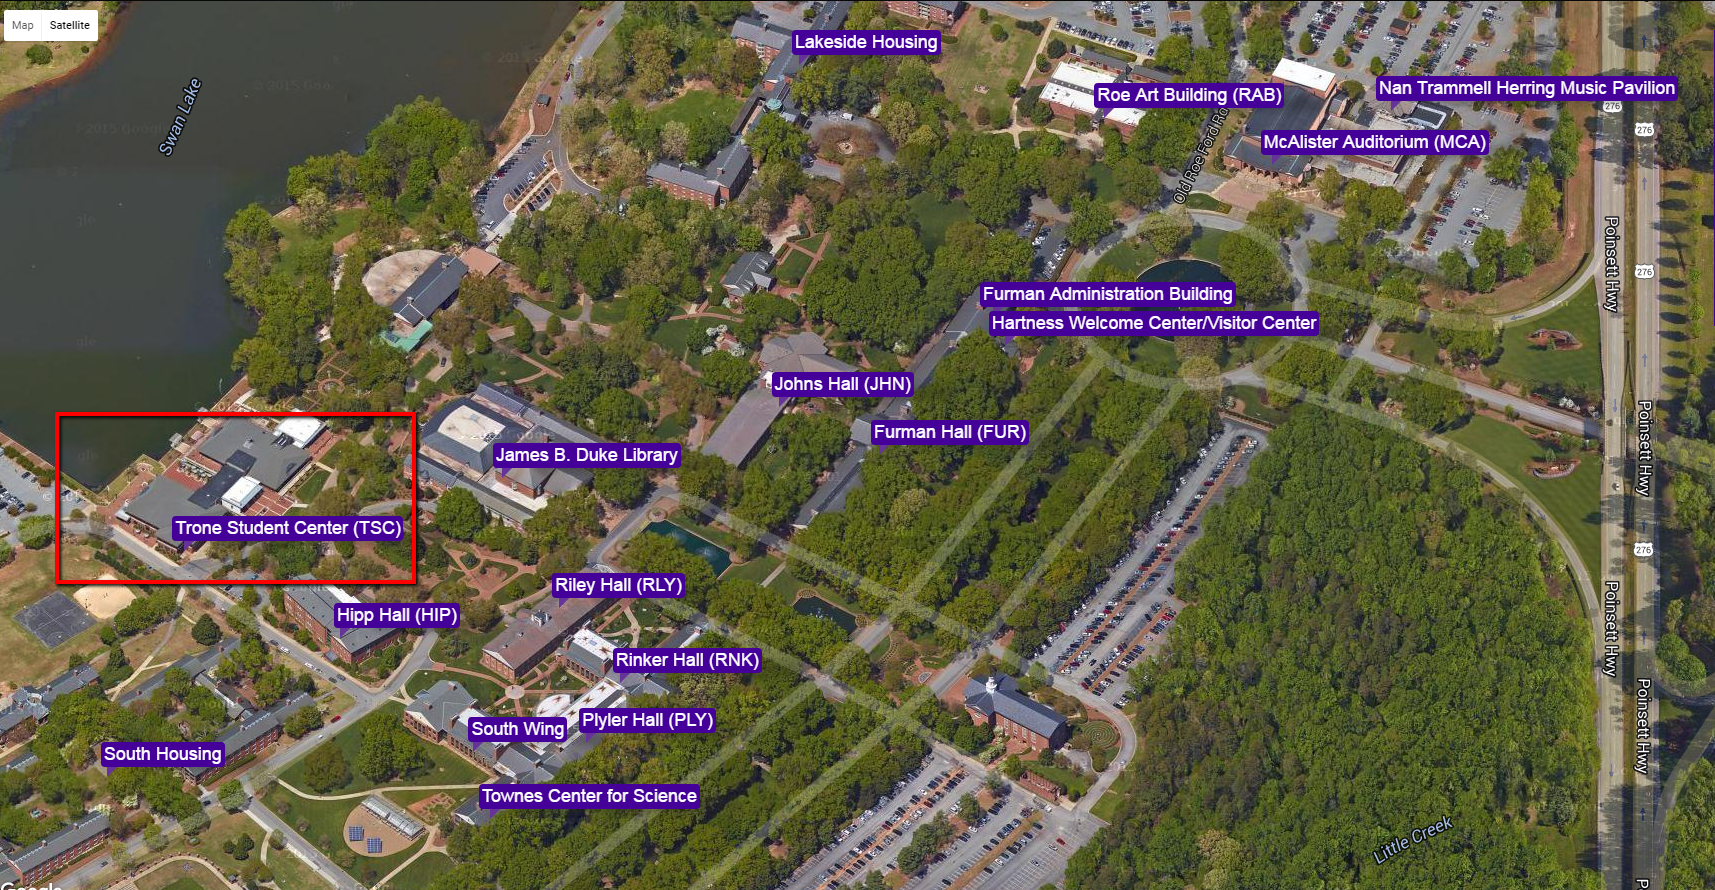 furman university campus map Where Is The Watkins Room Libanswers furman university campus map